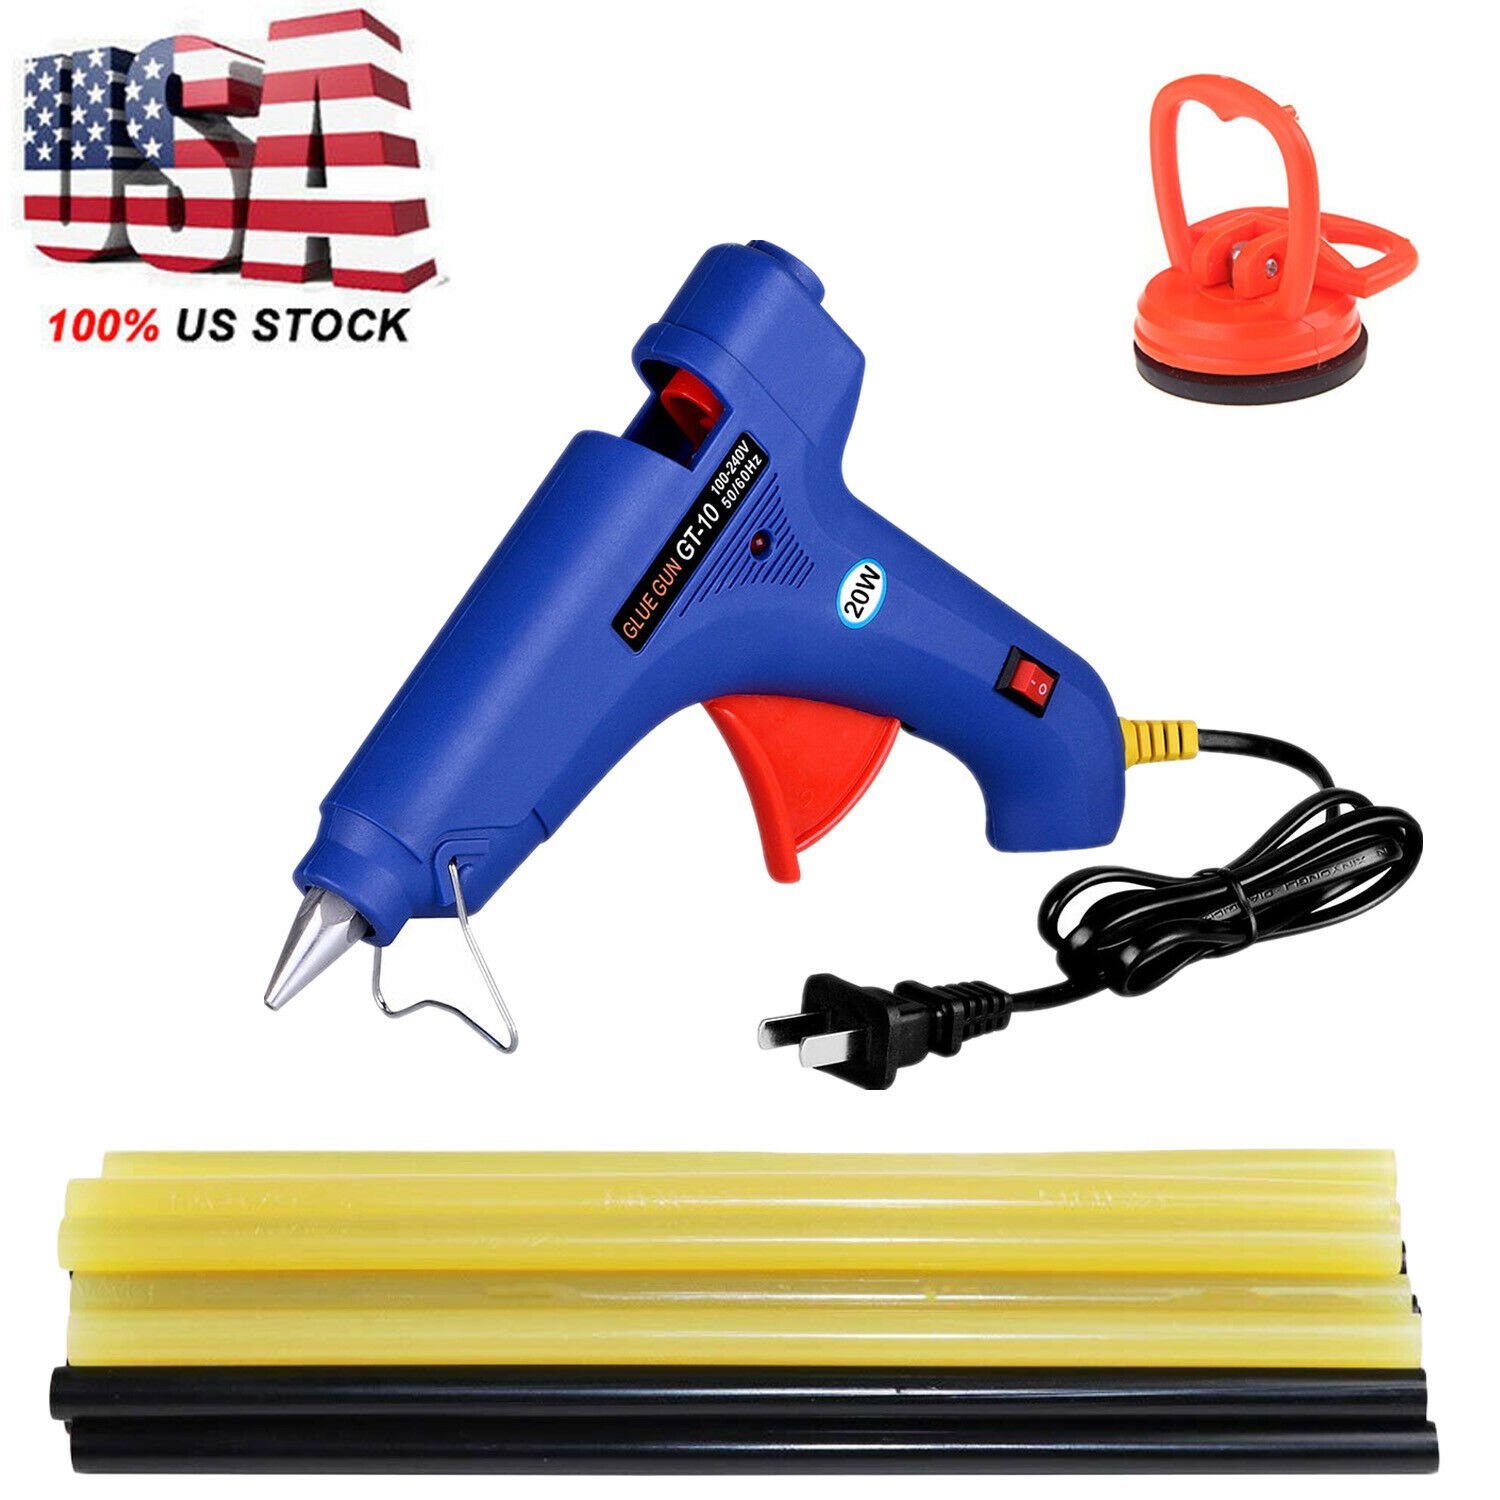 Details about Hot Melt Glue Gun with 20pc 7mm Glue Stick Industrial Mini  Gun Thermo